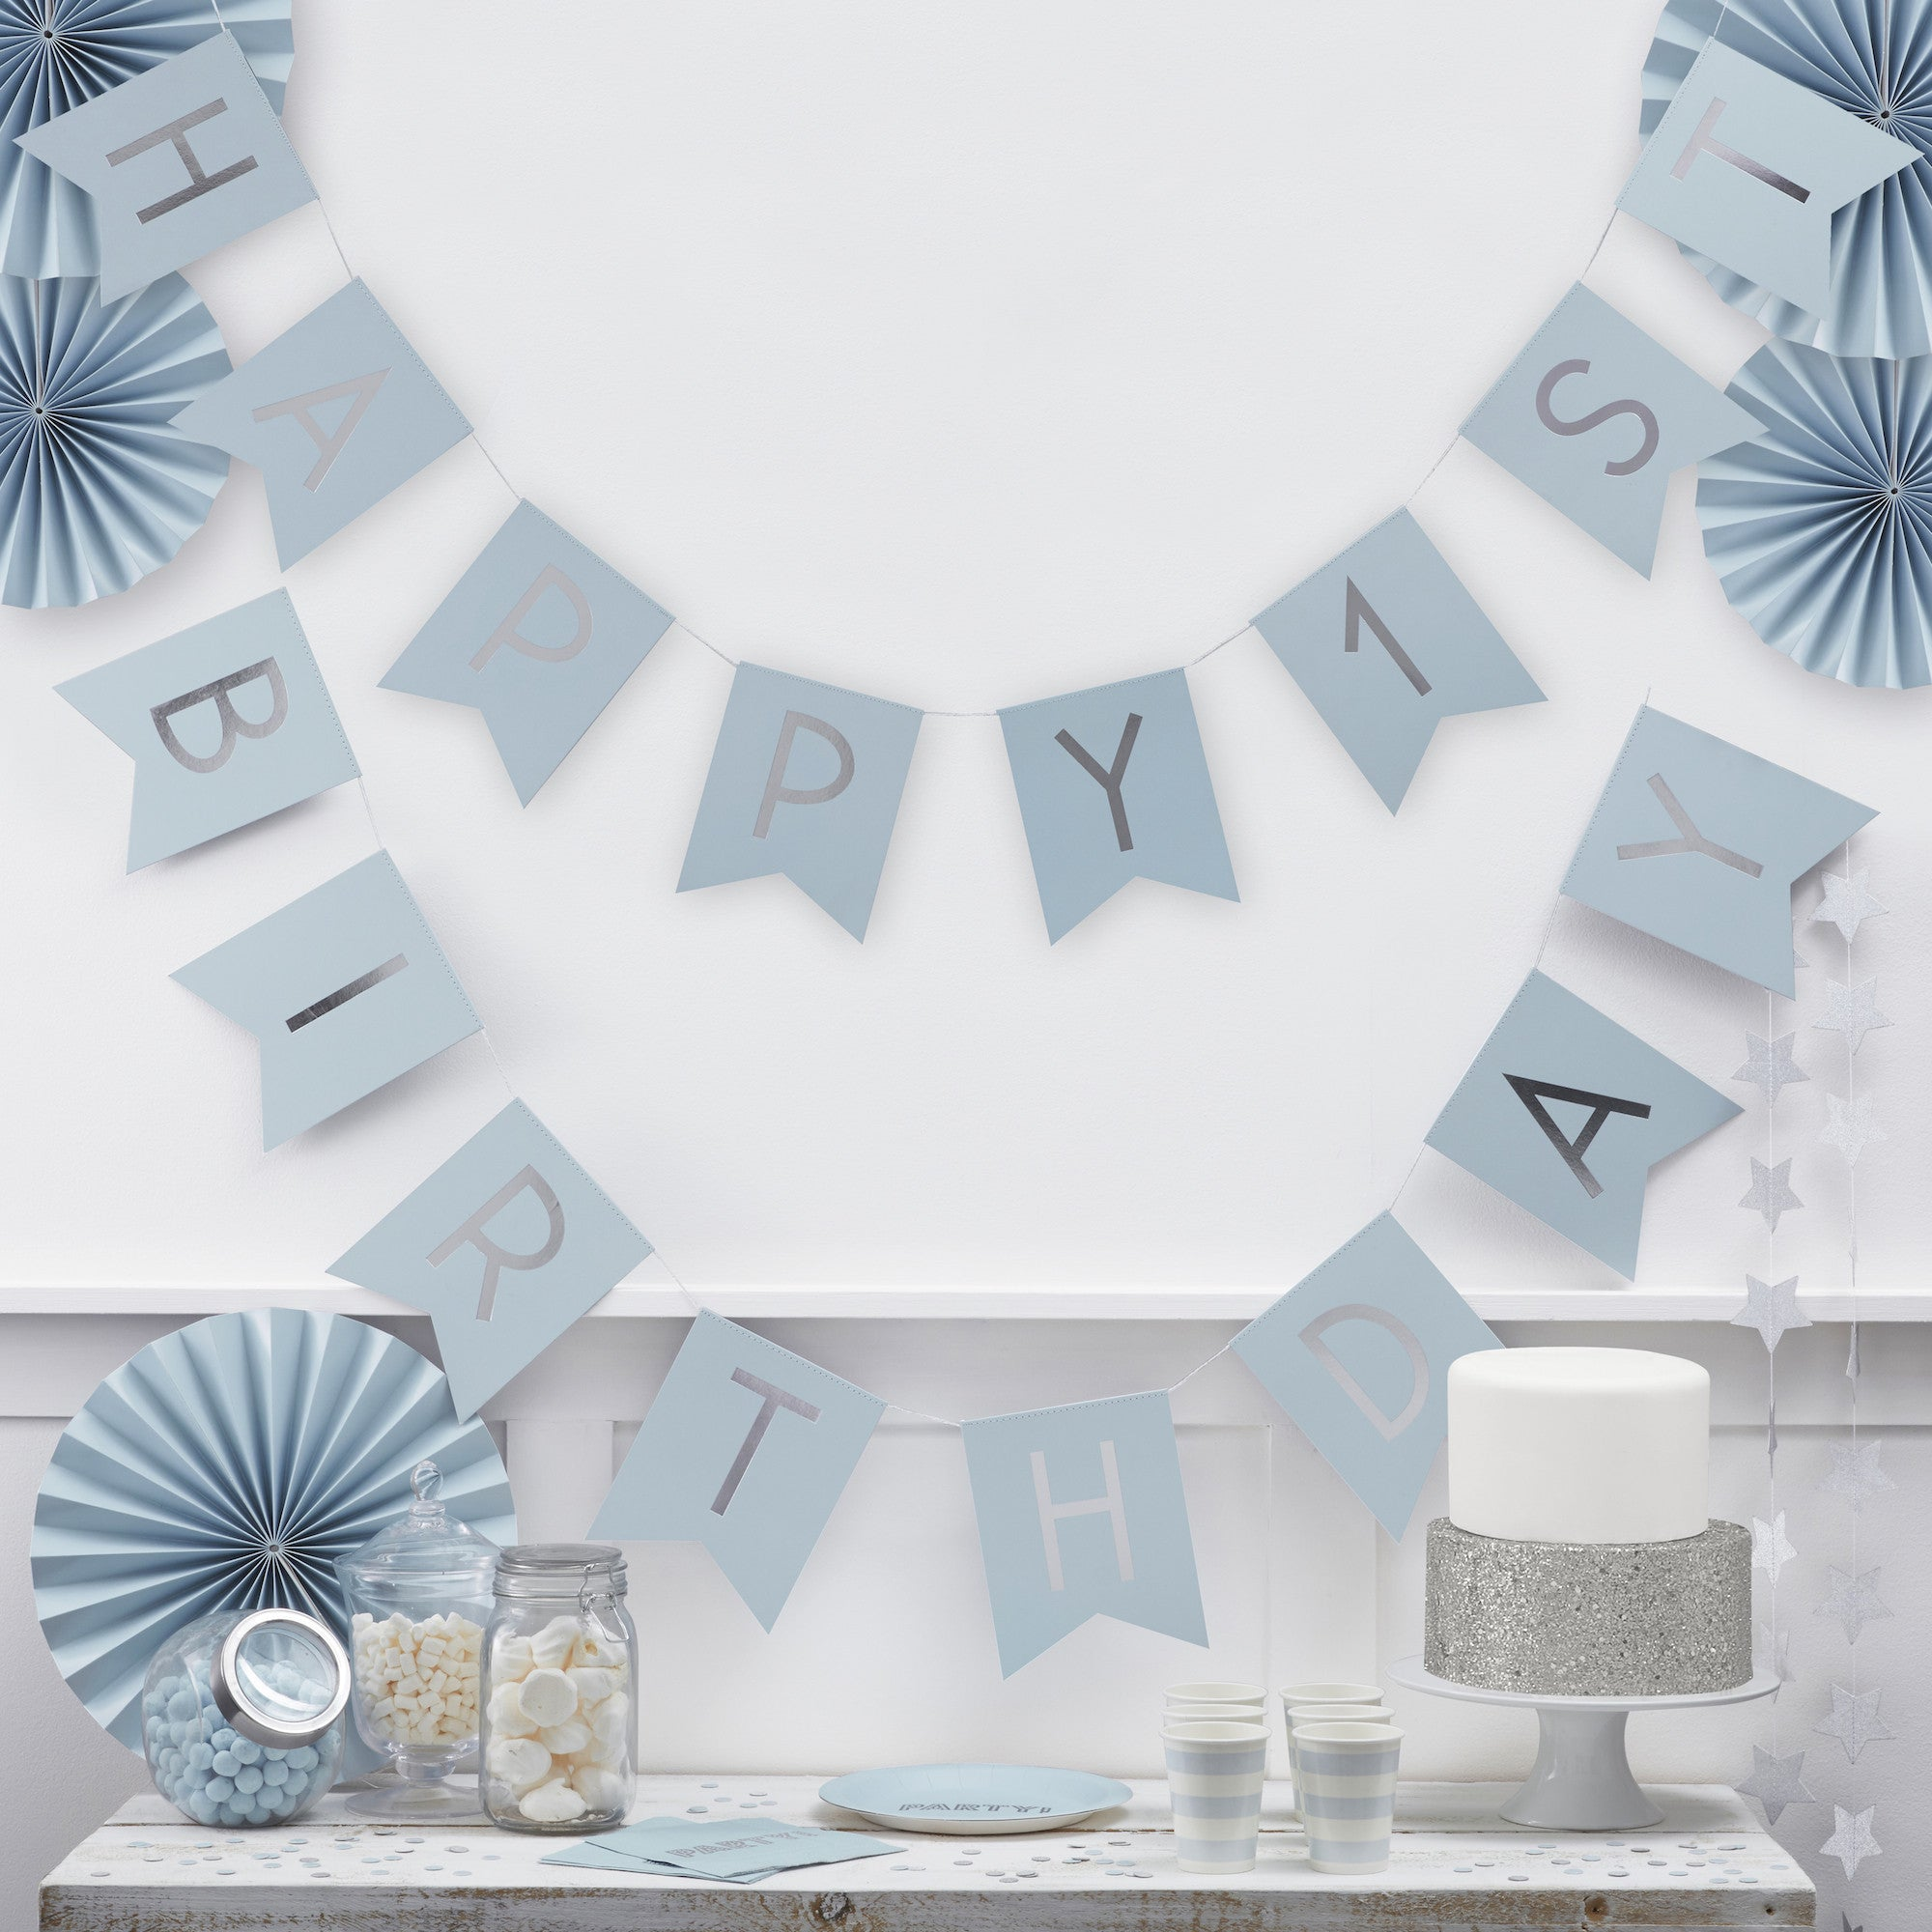 Happy 1st Birthday Blue & Silver Bunting - The Sweet Hostess